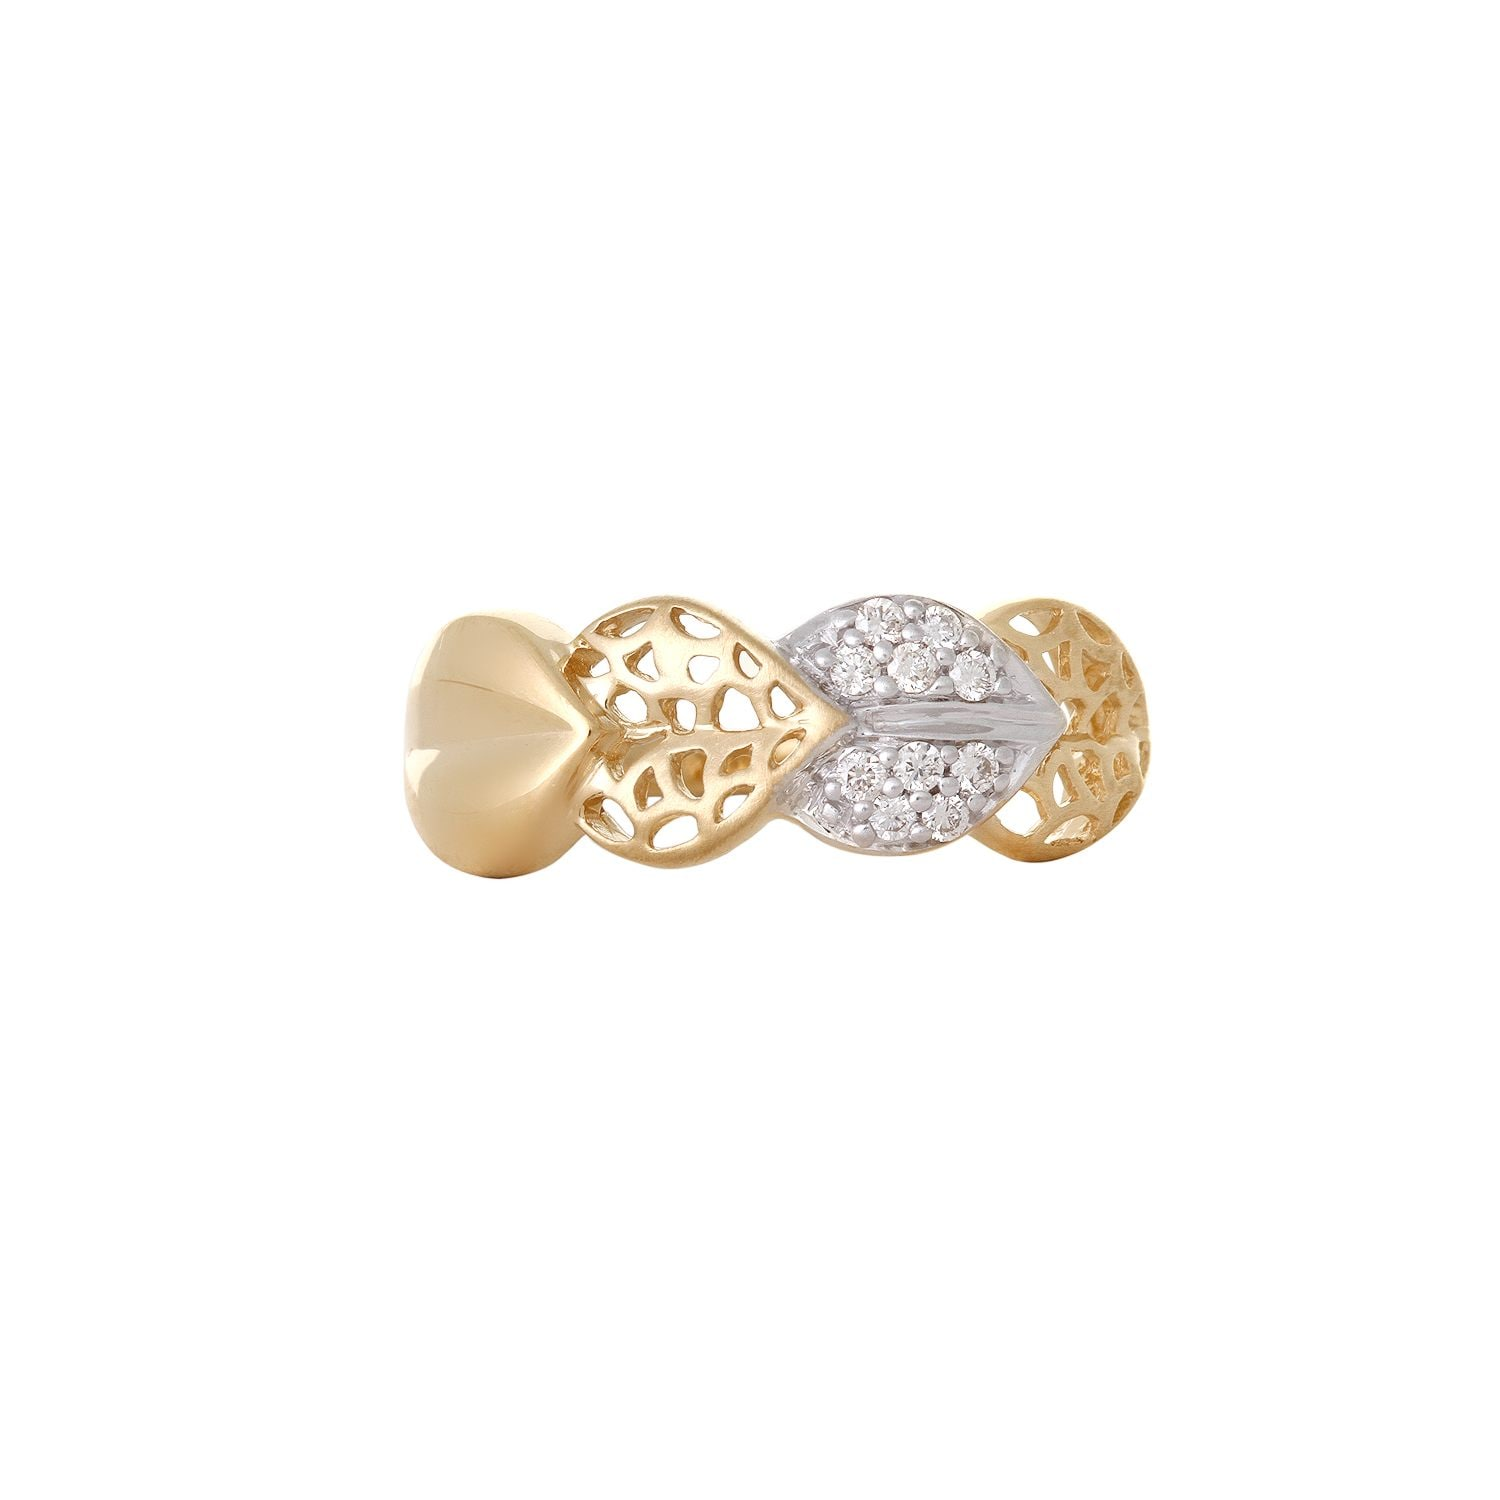 Buy 14kt yellow gold finished Finger ring with brilliant cut ...